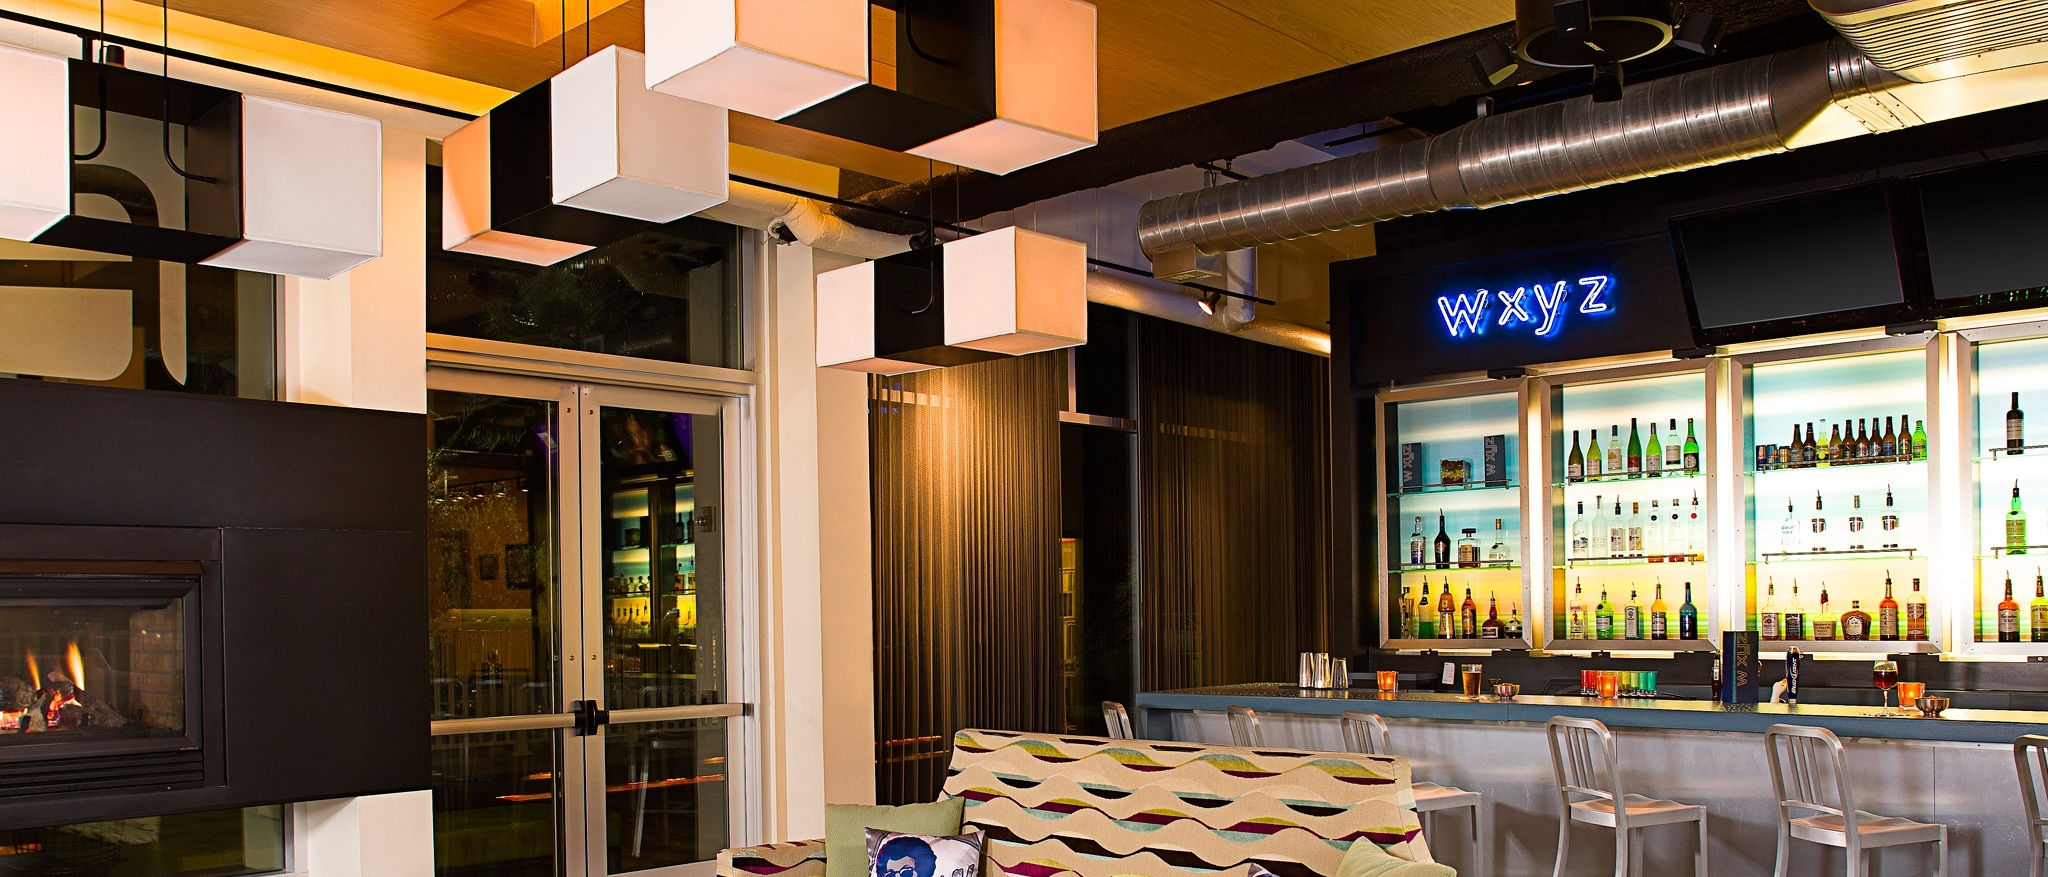 Aloft Jacksonville Airport - Re:mix lounge